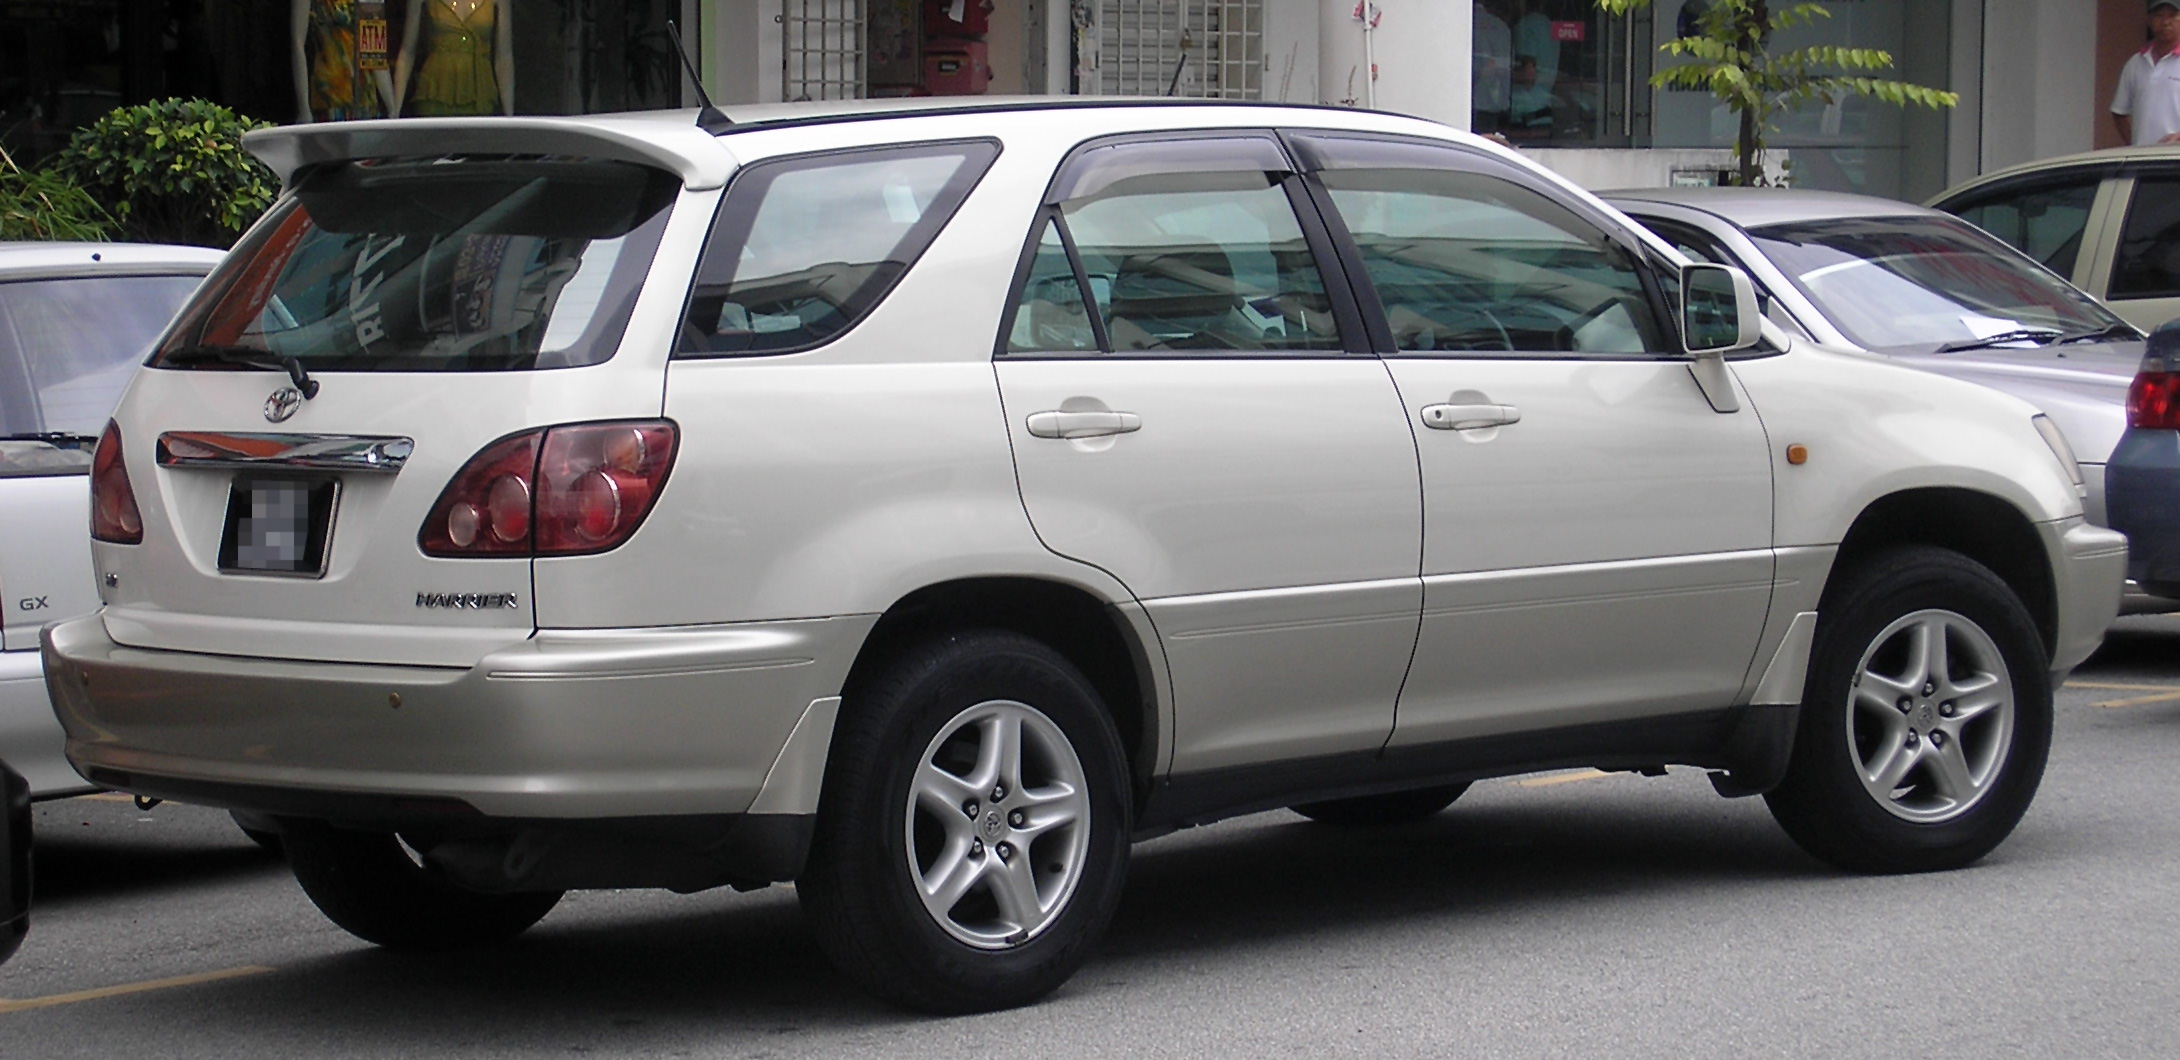 Toyota Harrier 2007 Photo - 1